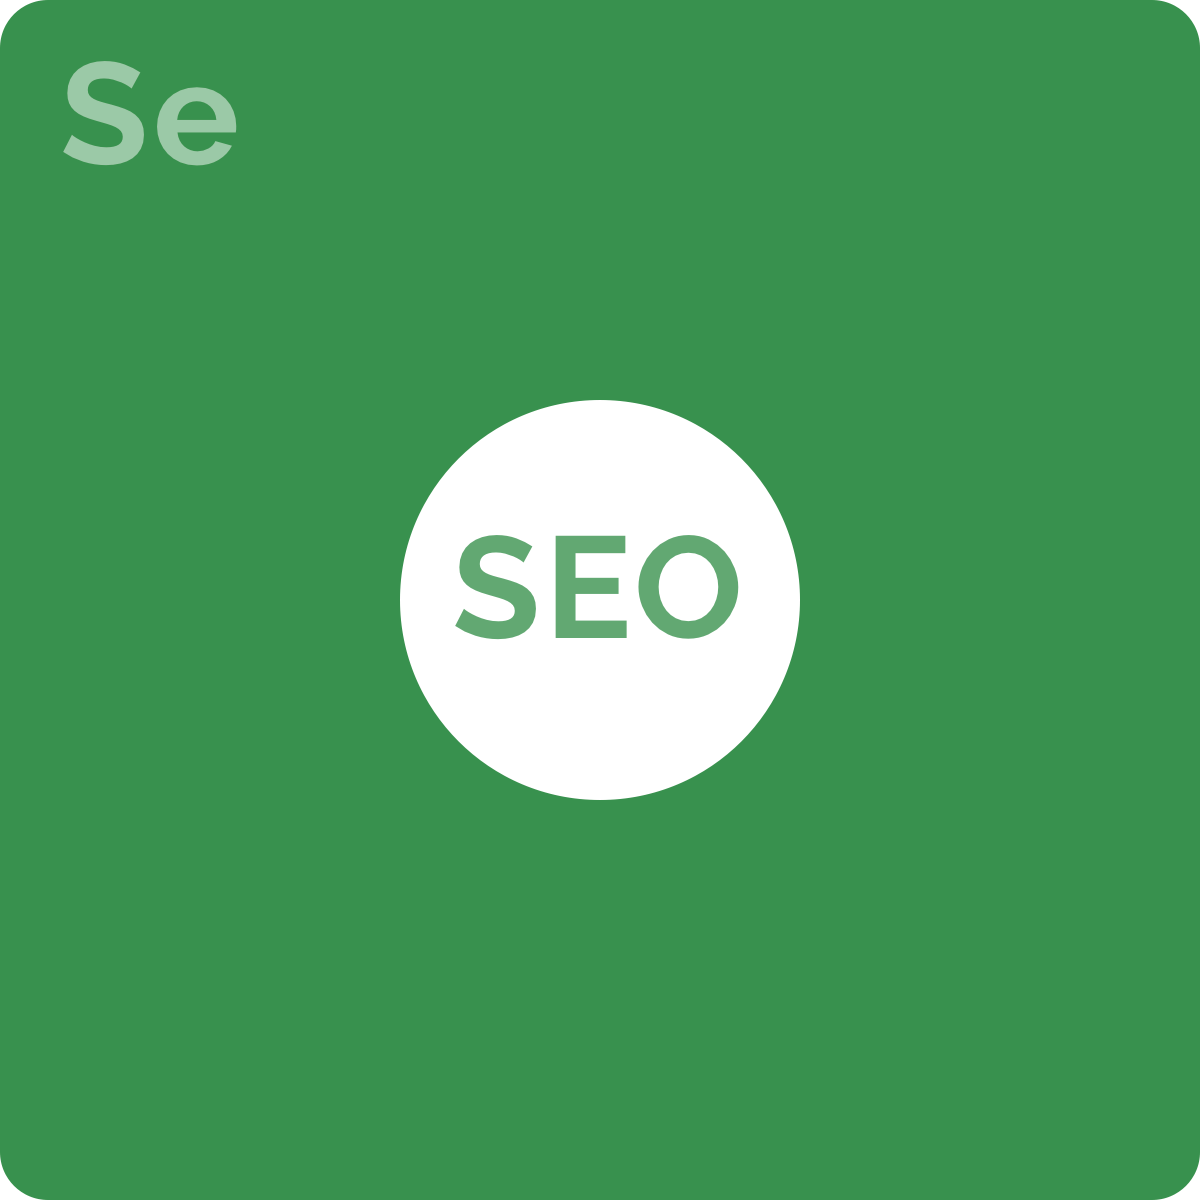 By doing a technical audit, reviewing the on-page and off-page factors, will lead us to develop an SEO strategy that will help you improve your ranking in organic search.